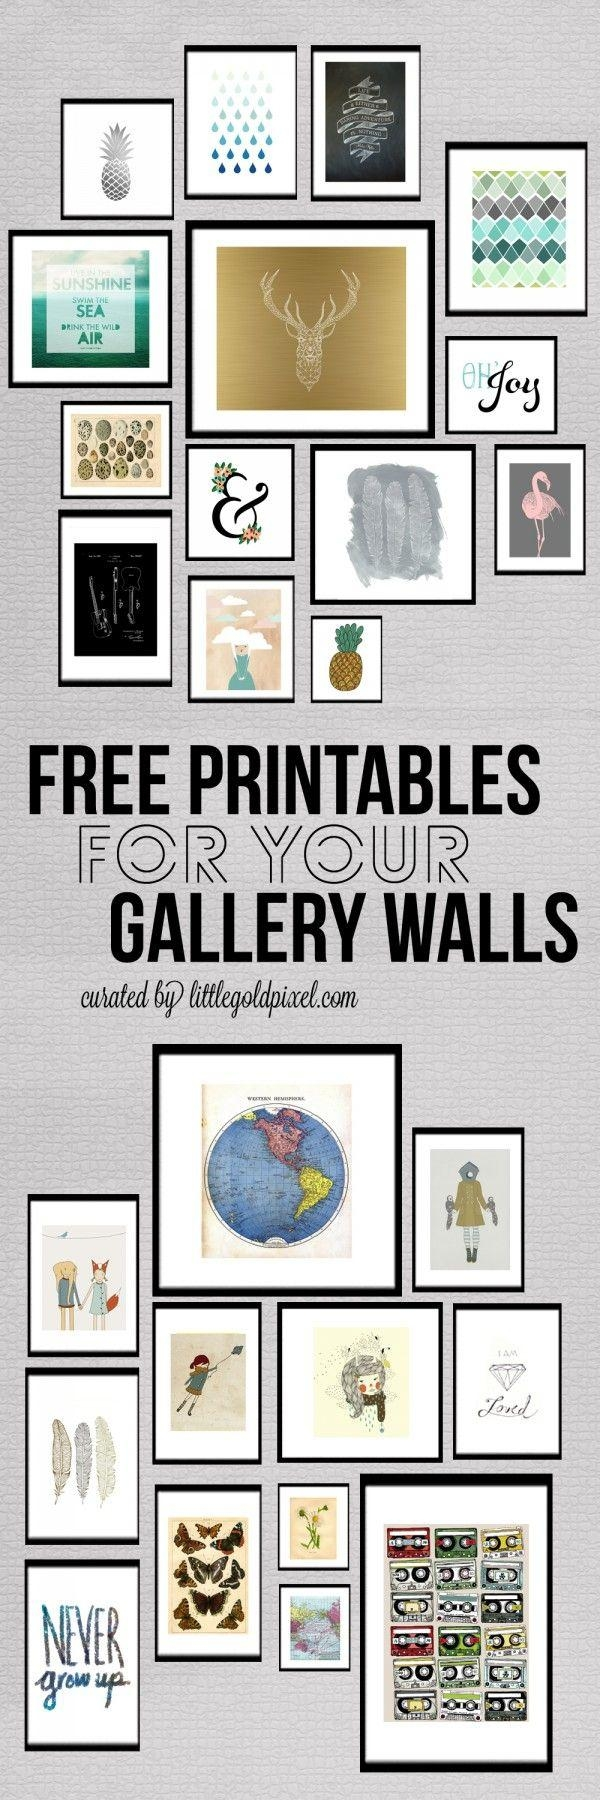 Best 10+ Diy Wall Art Ideas On Pinterest | Diy Art, Diy Wall Decor Pertaining To Pinterest Diy Wall Art (View 19 of 20)